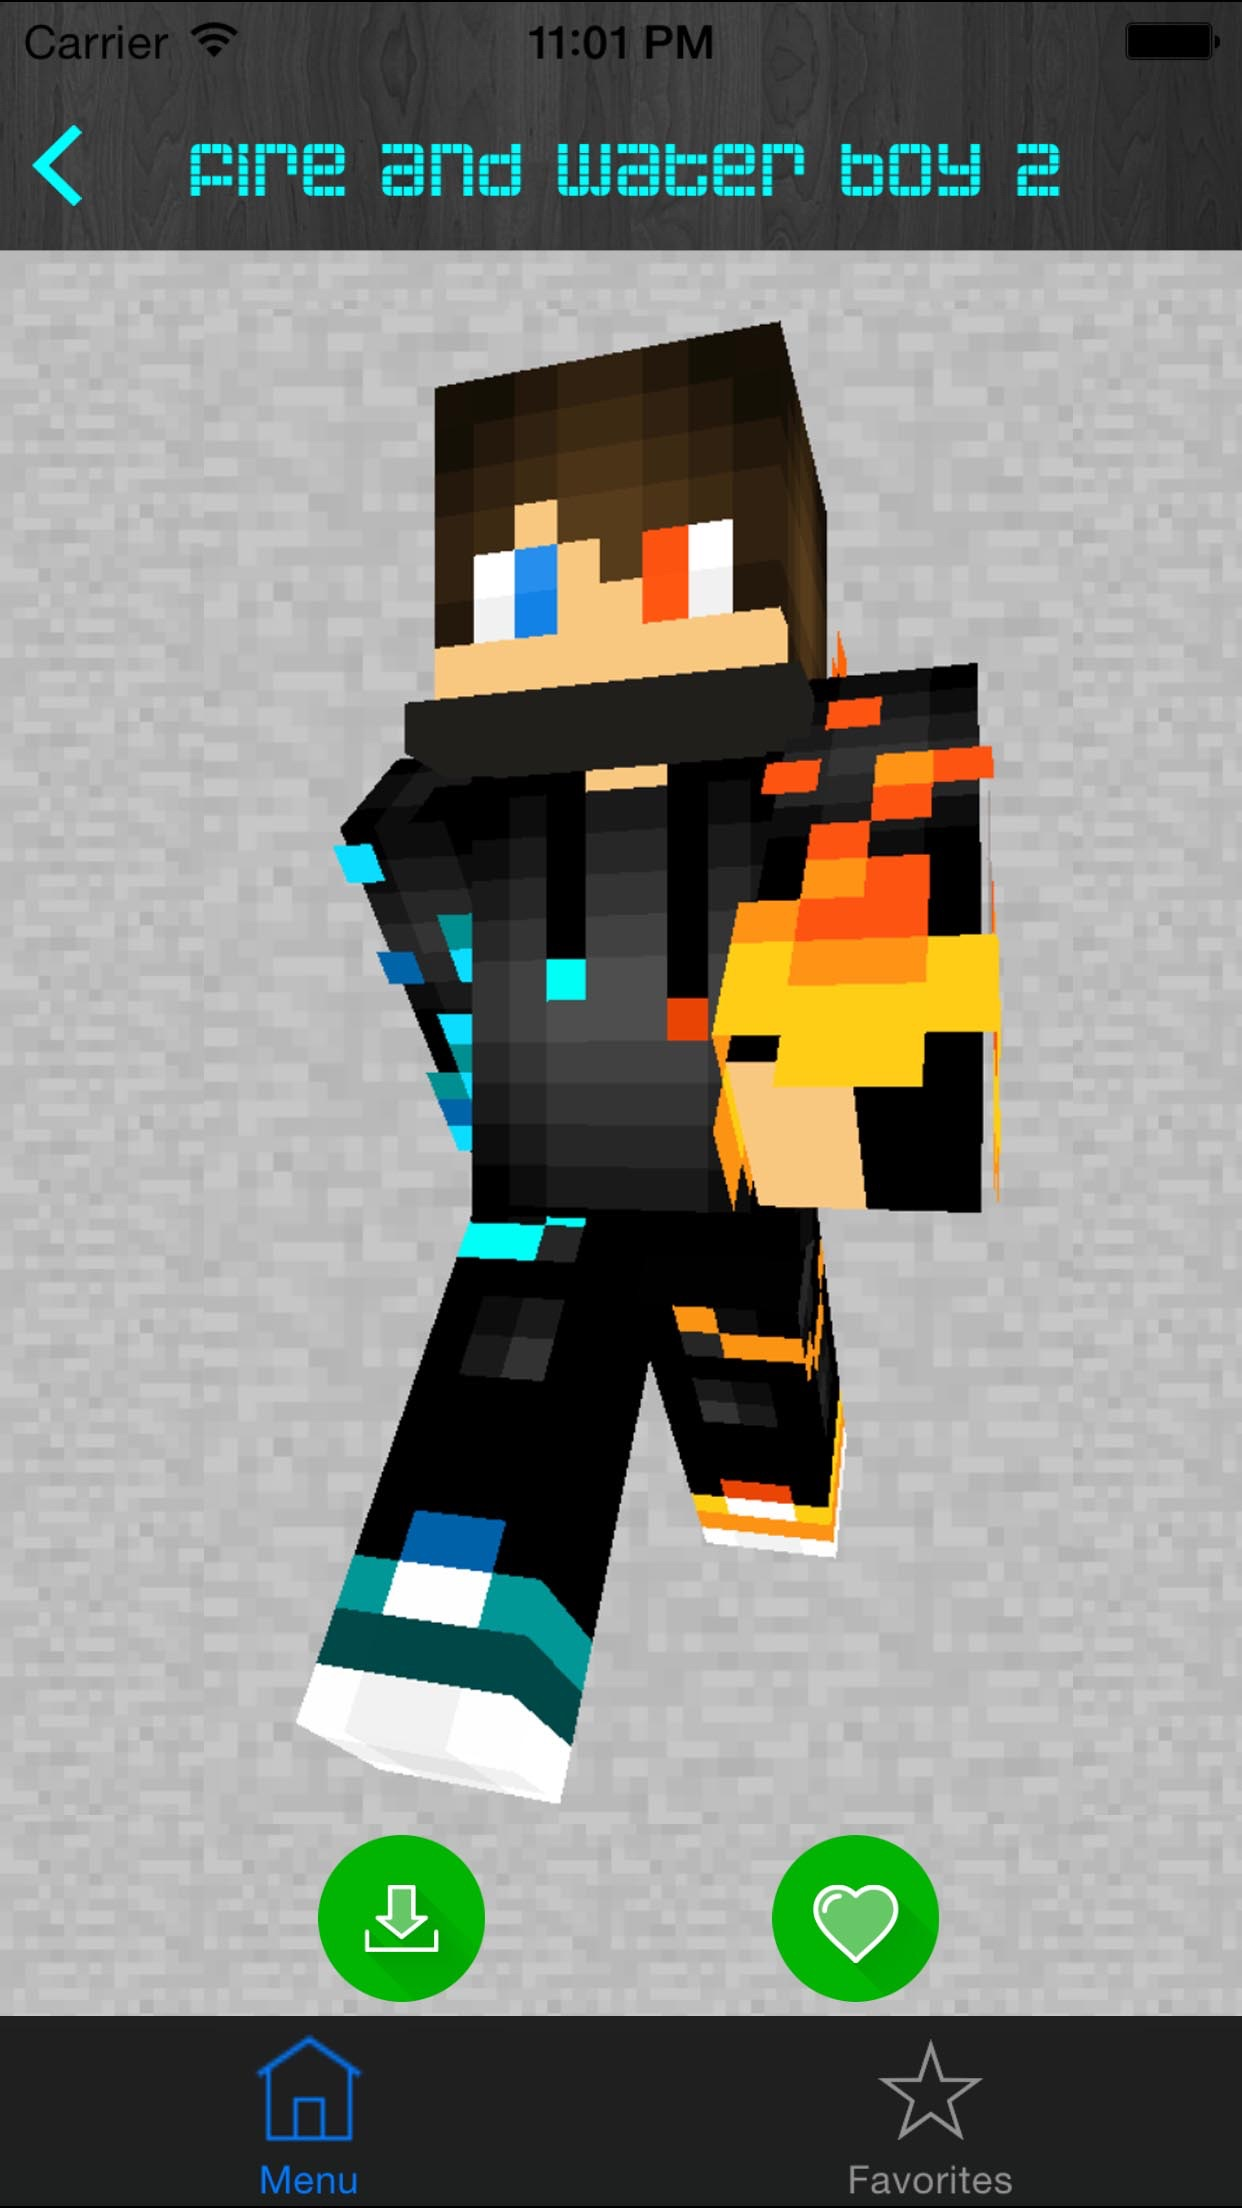 Boy Skins for Minecraft PE (Pocket Edition) - Free Skins App for MCPE PC Screenshot